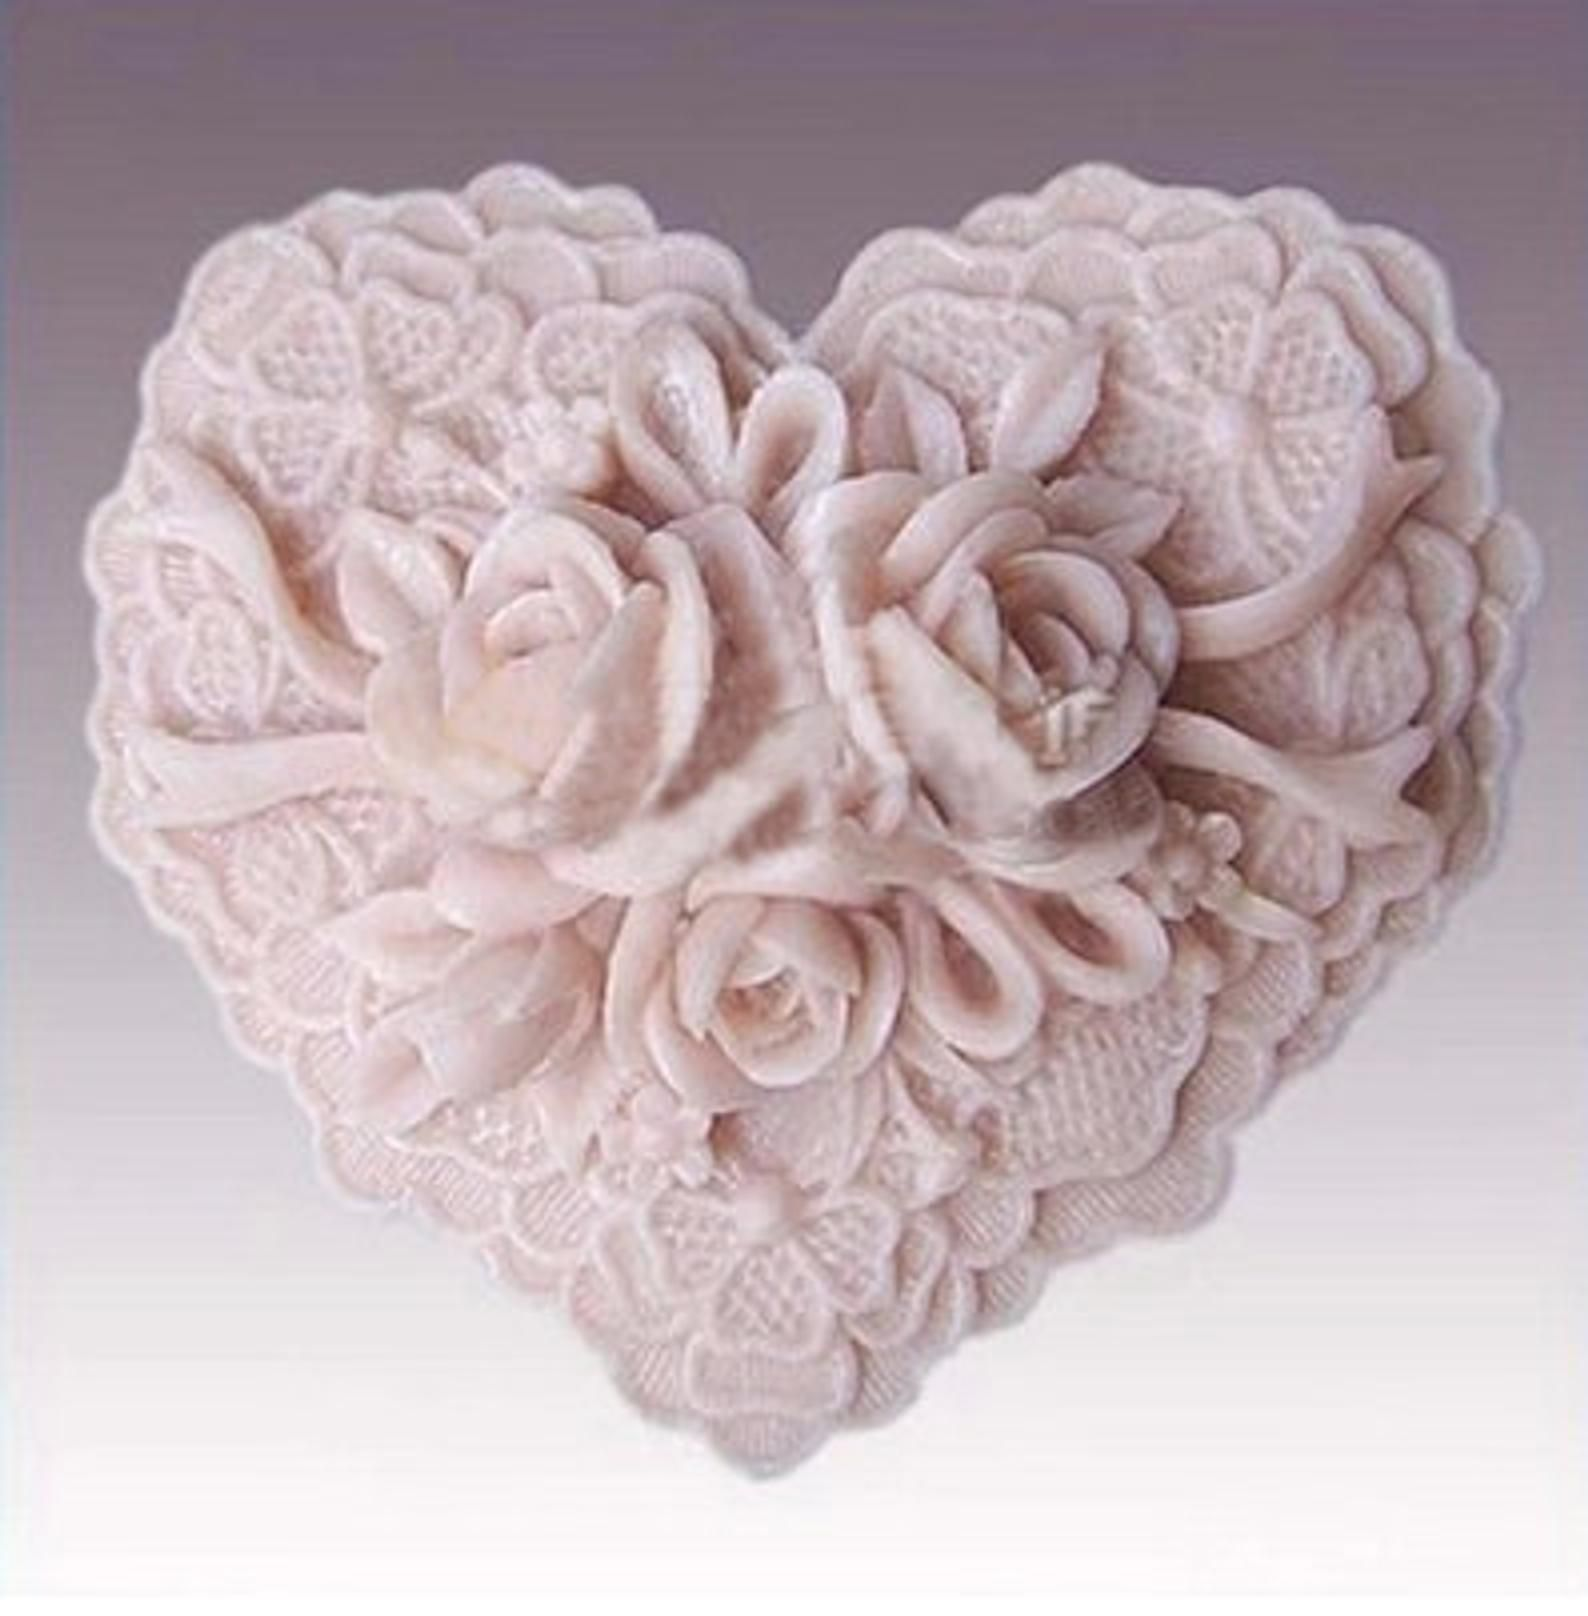 Heart Rose Floral Soap Mold Flexible Silicone Mold Candy